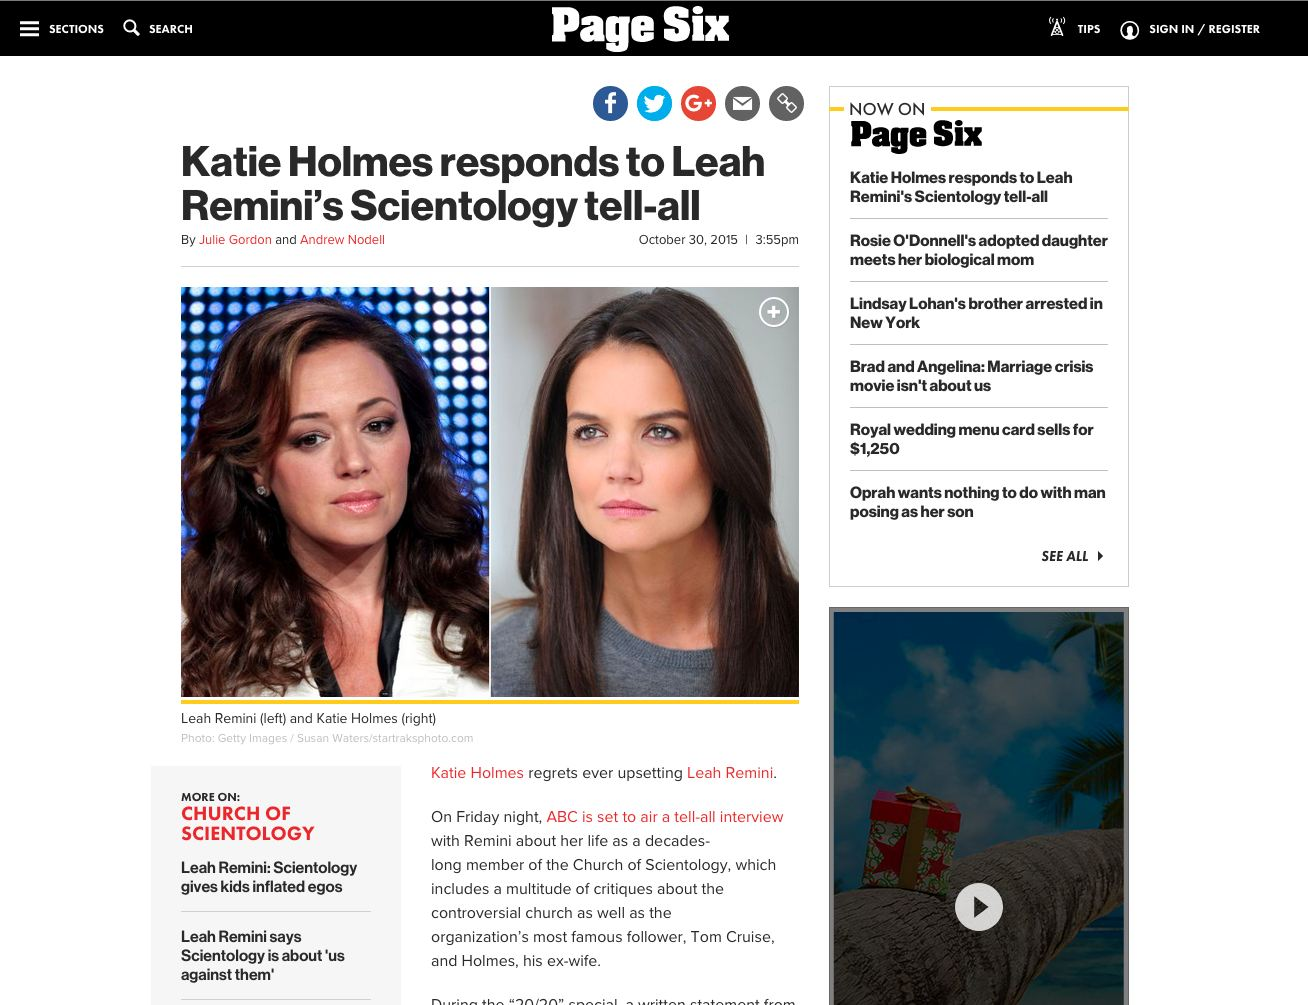 screen shot of a page six featured article with a large image and text to show what the site looks like